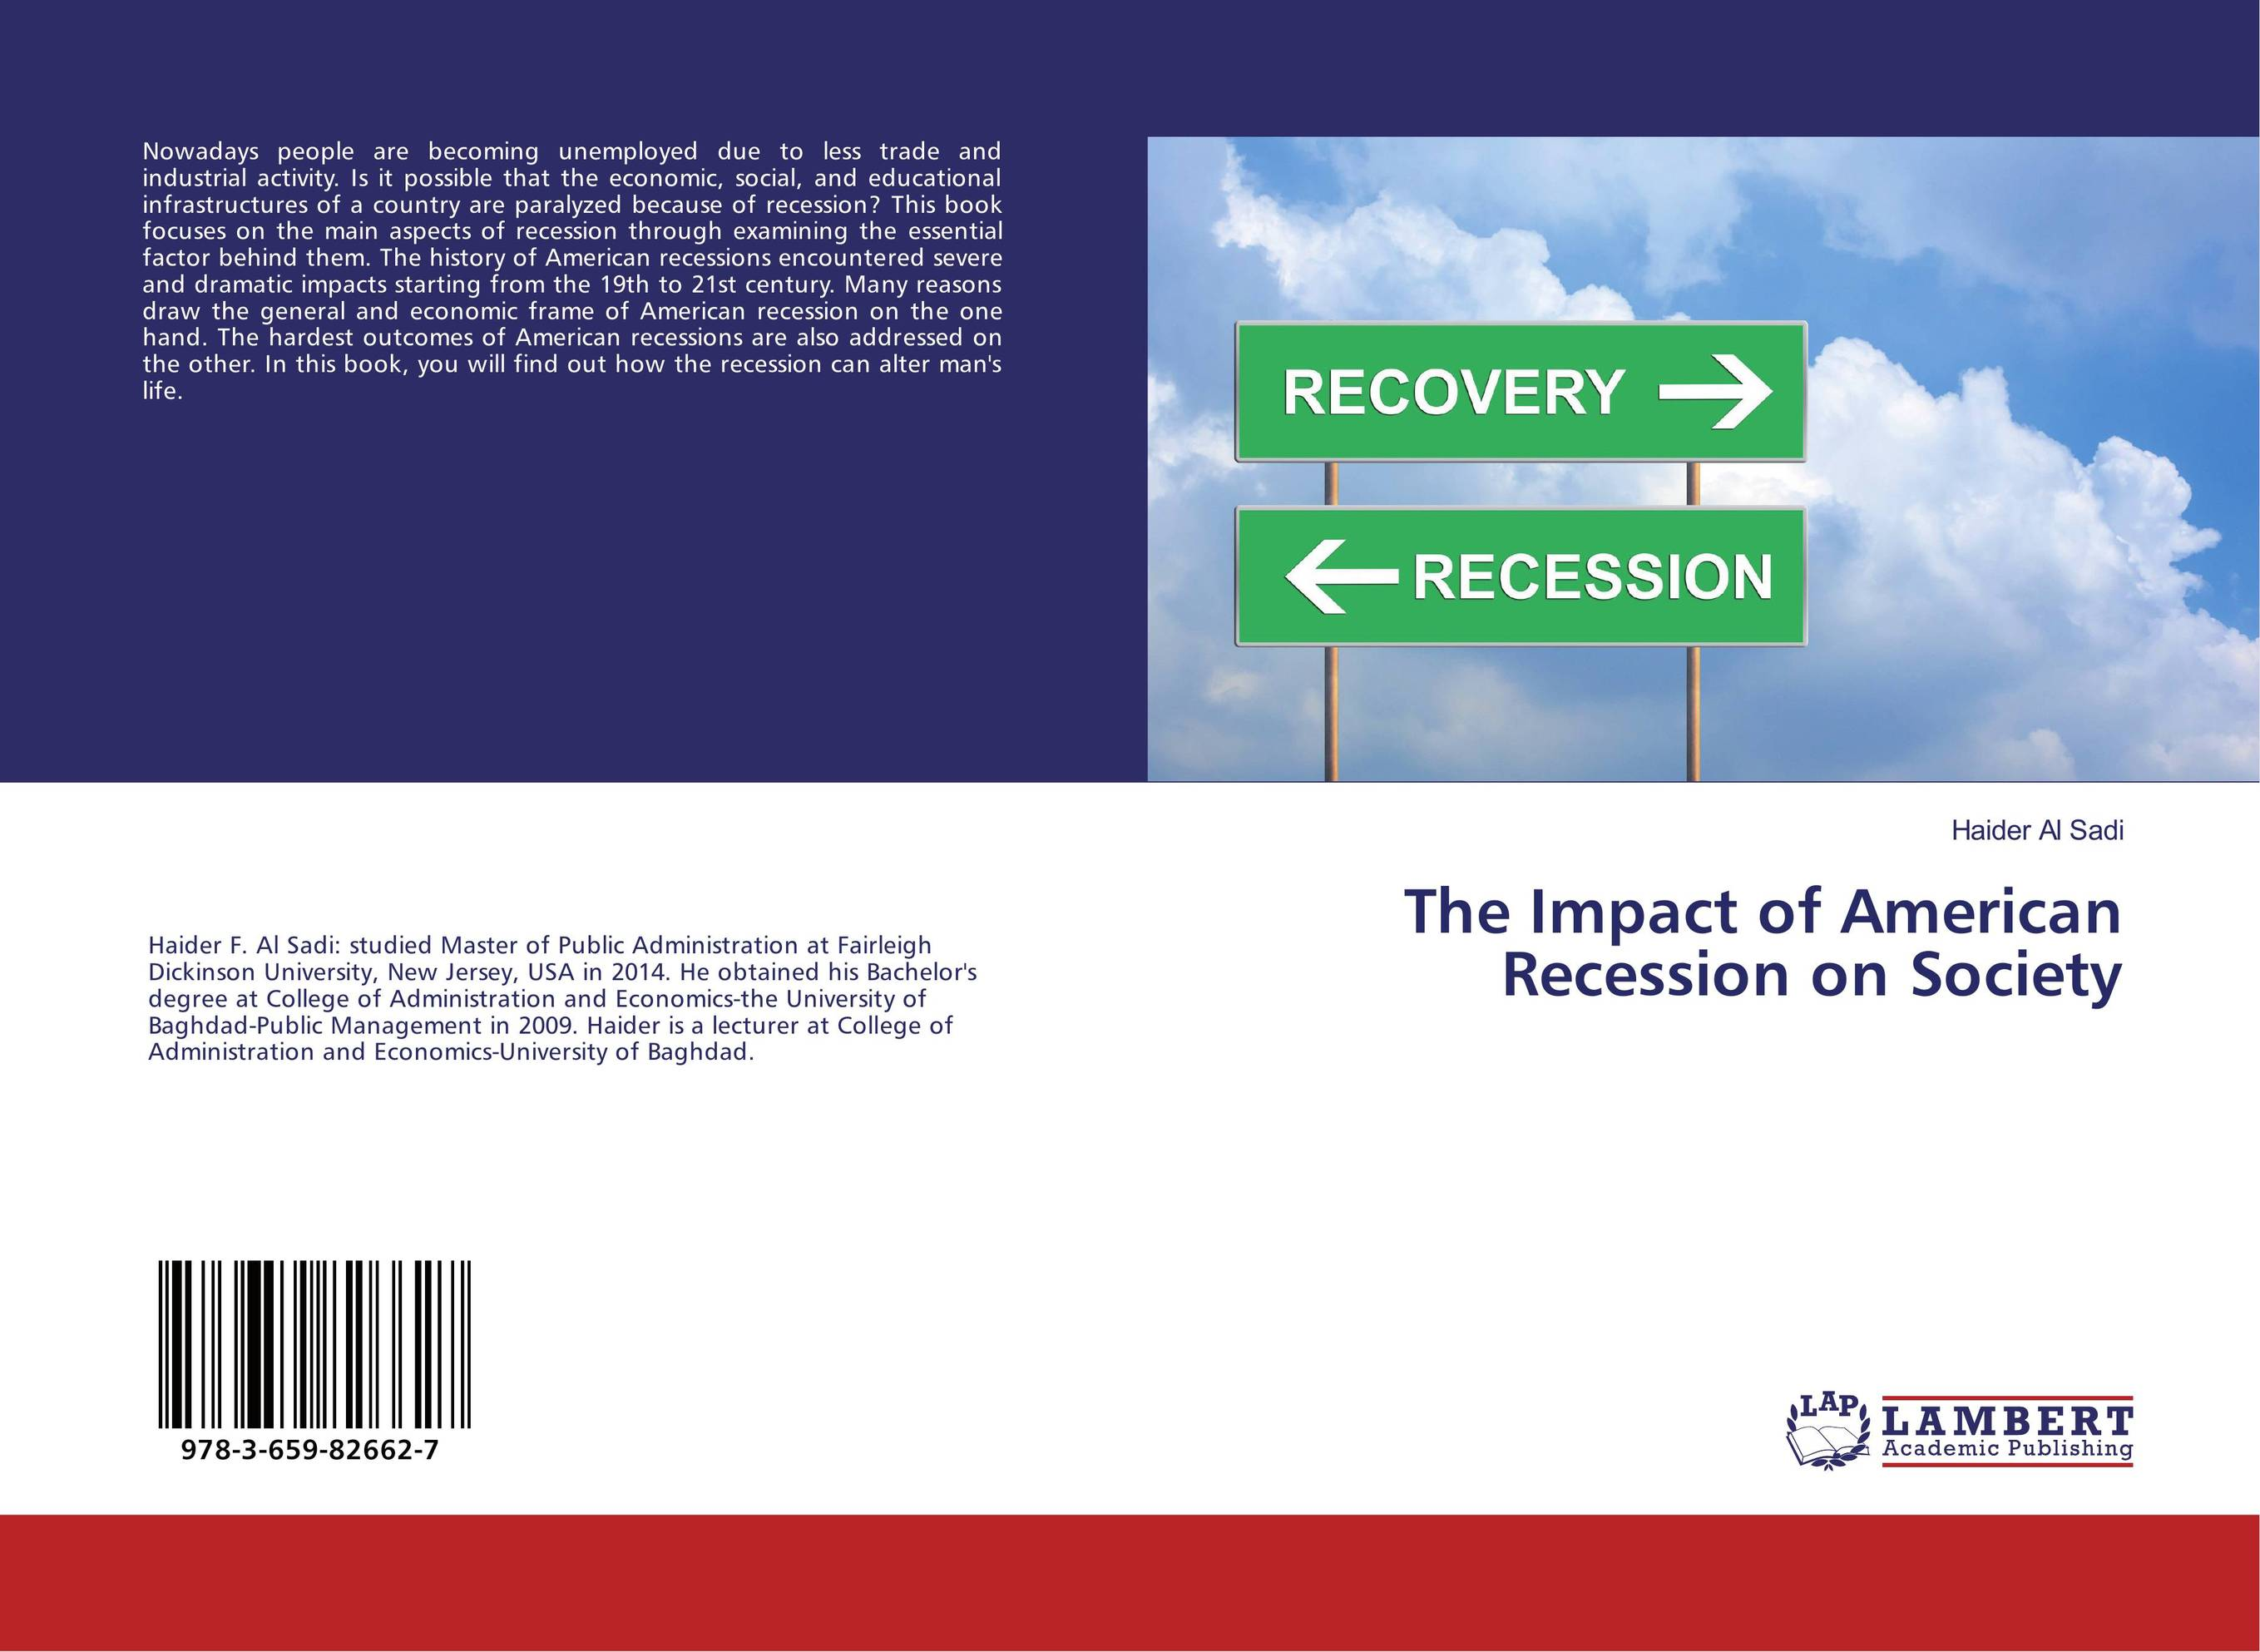 The Impact of American Recession on Society